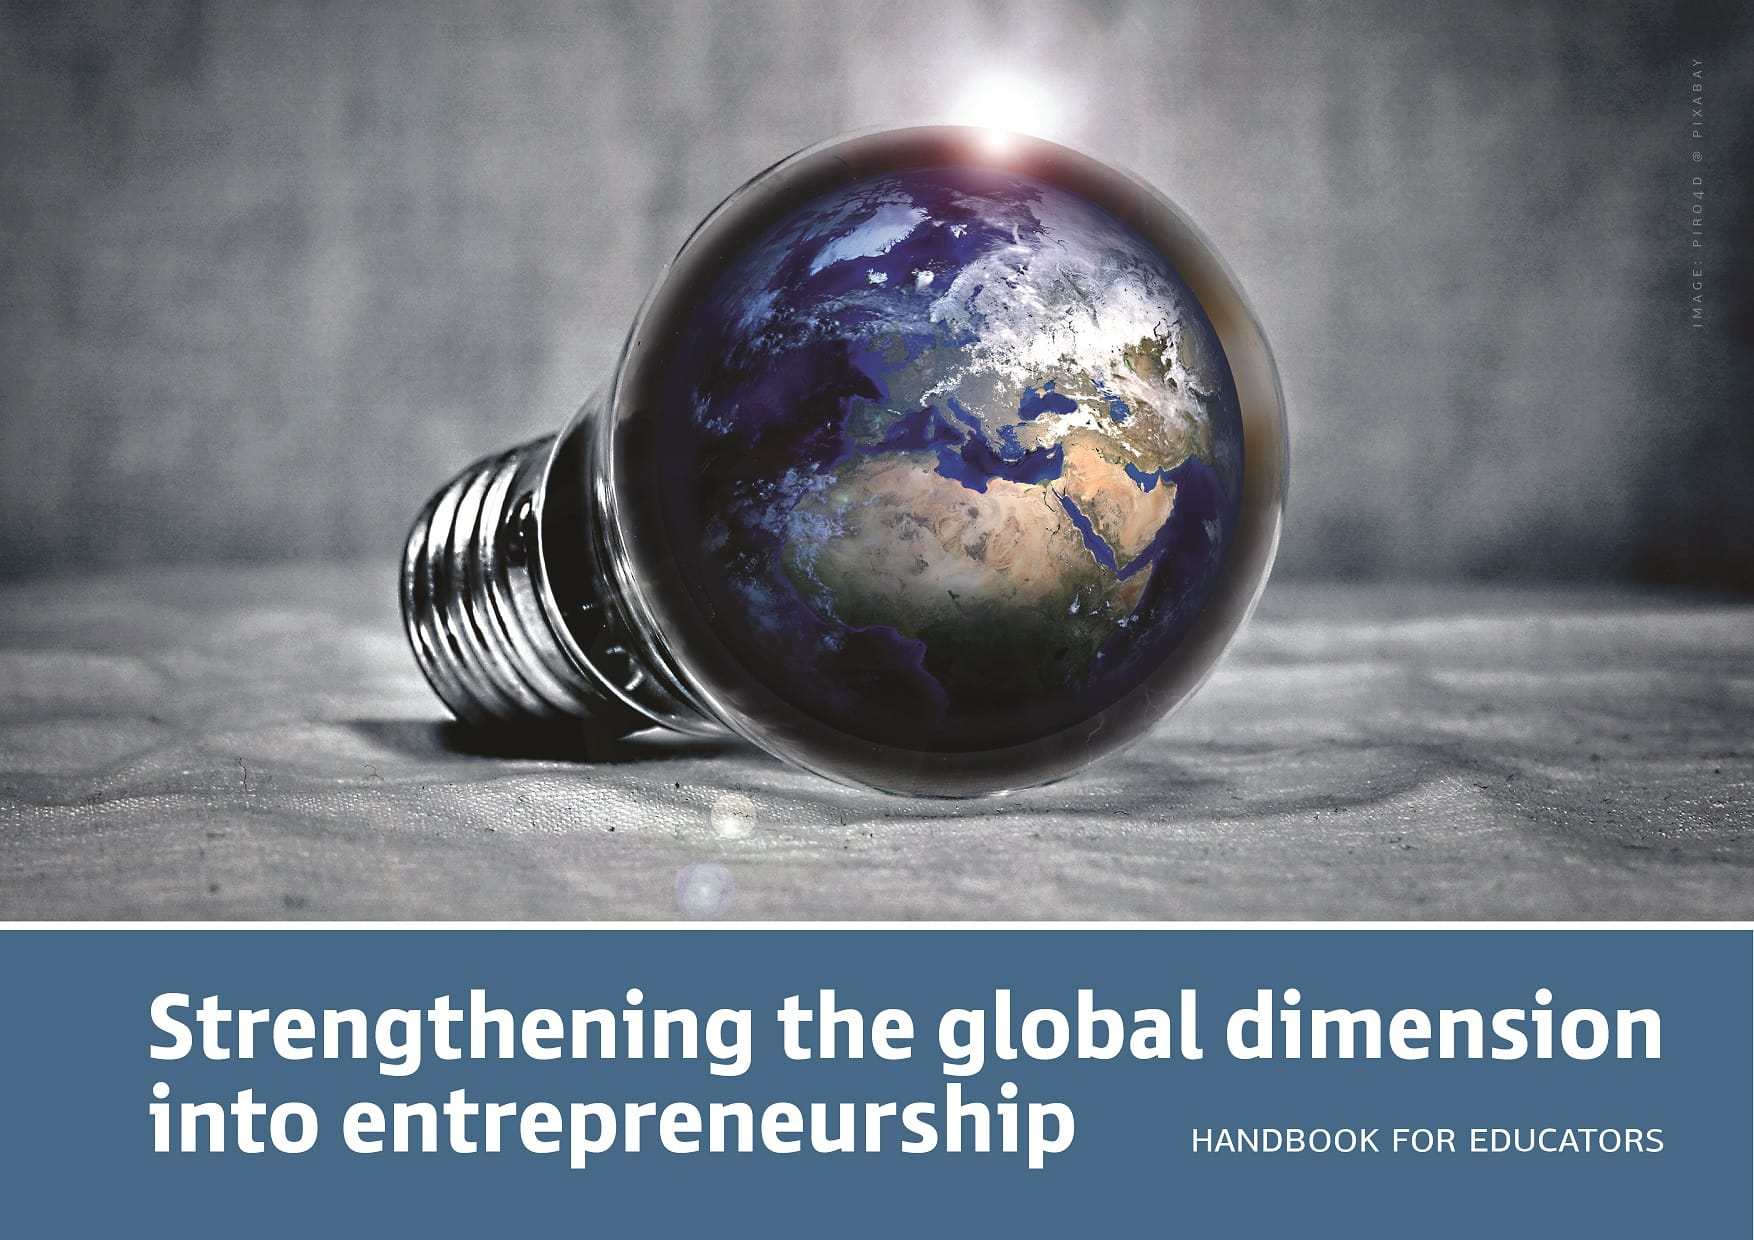 How to bring a global dimension to entrepreneurship?